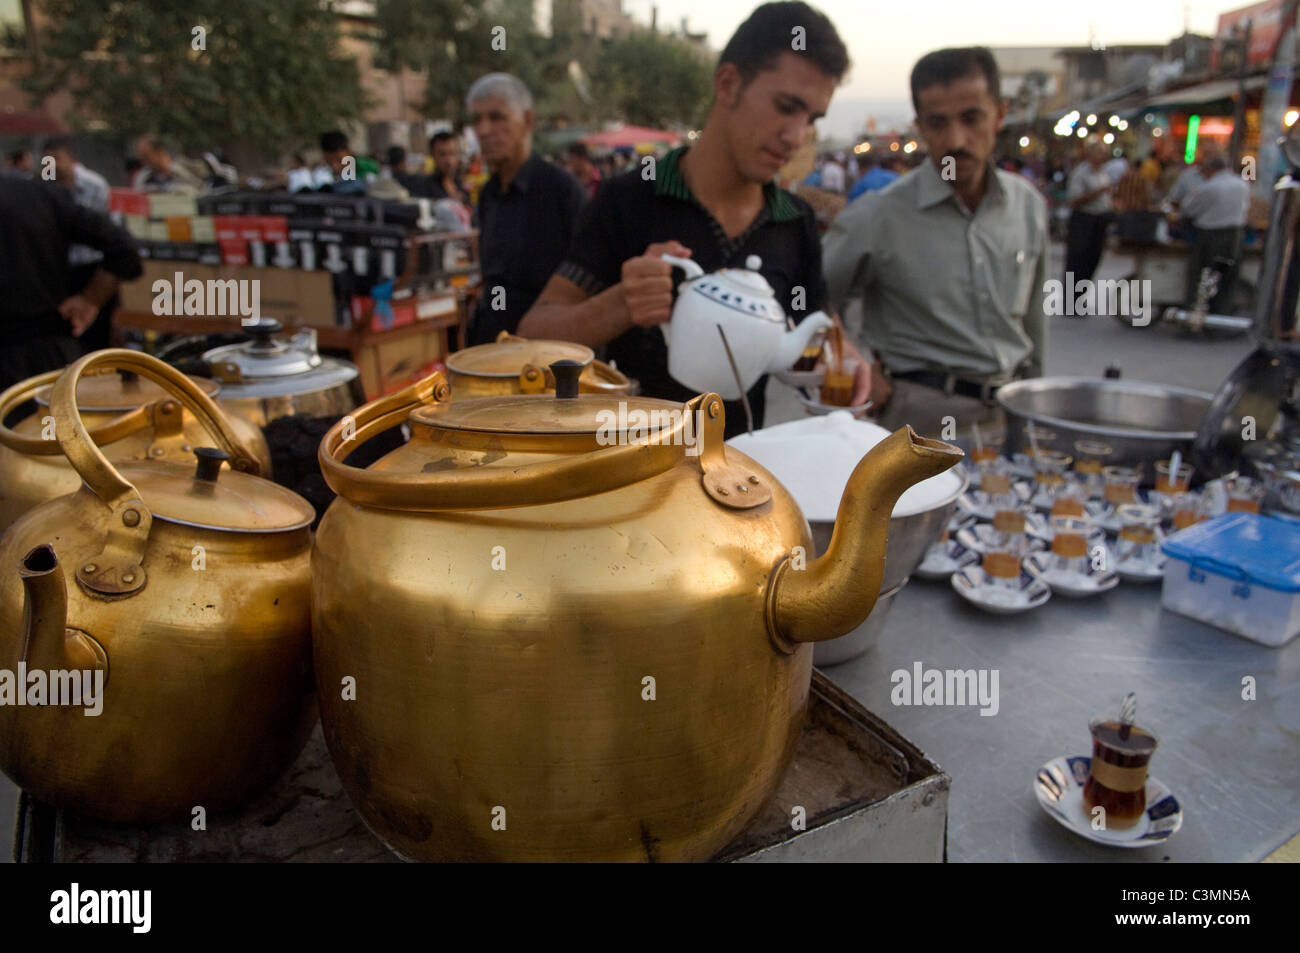 Kurdish Tea Stall Suliymaniya North Iraq - Stock Image